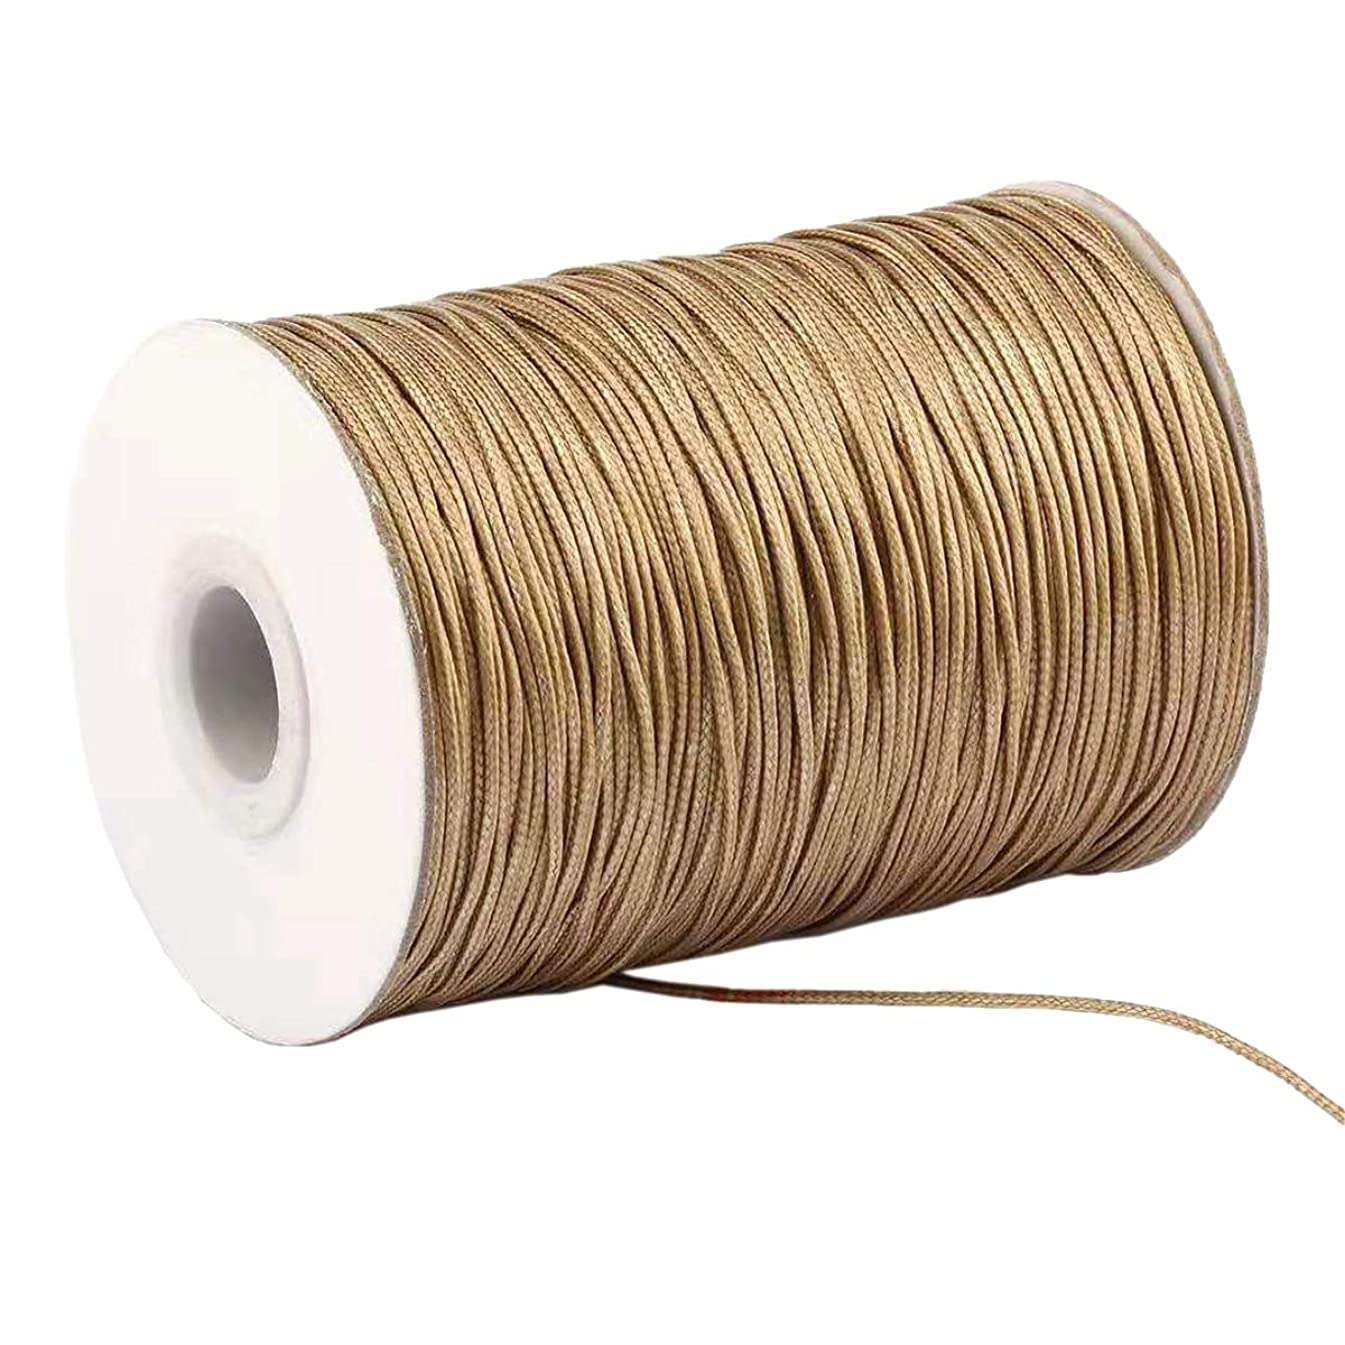 Yzsfirm 1 Roll 1mm Waxed Cord 175 Yards Thread Spool String Khaki Tag Rope for Jewelry Sewing and Necklace Shoelaces DIY Making